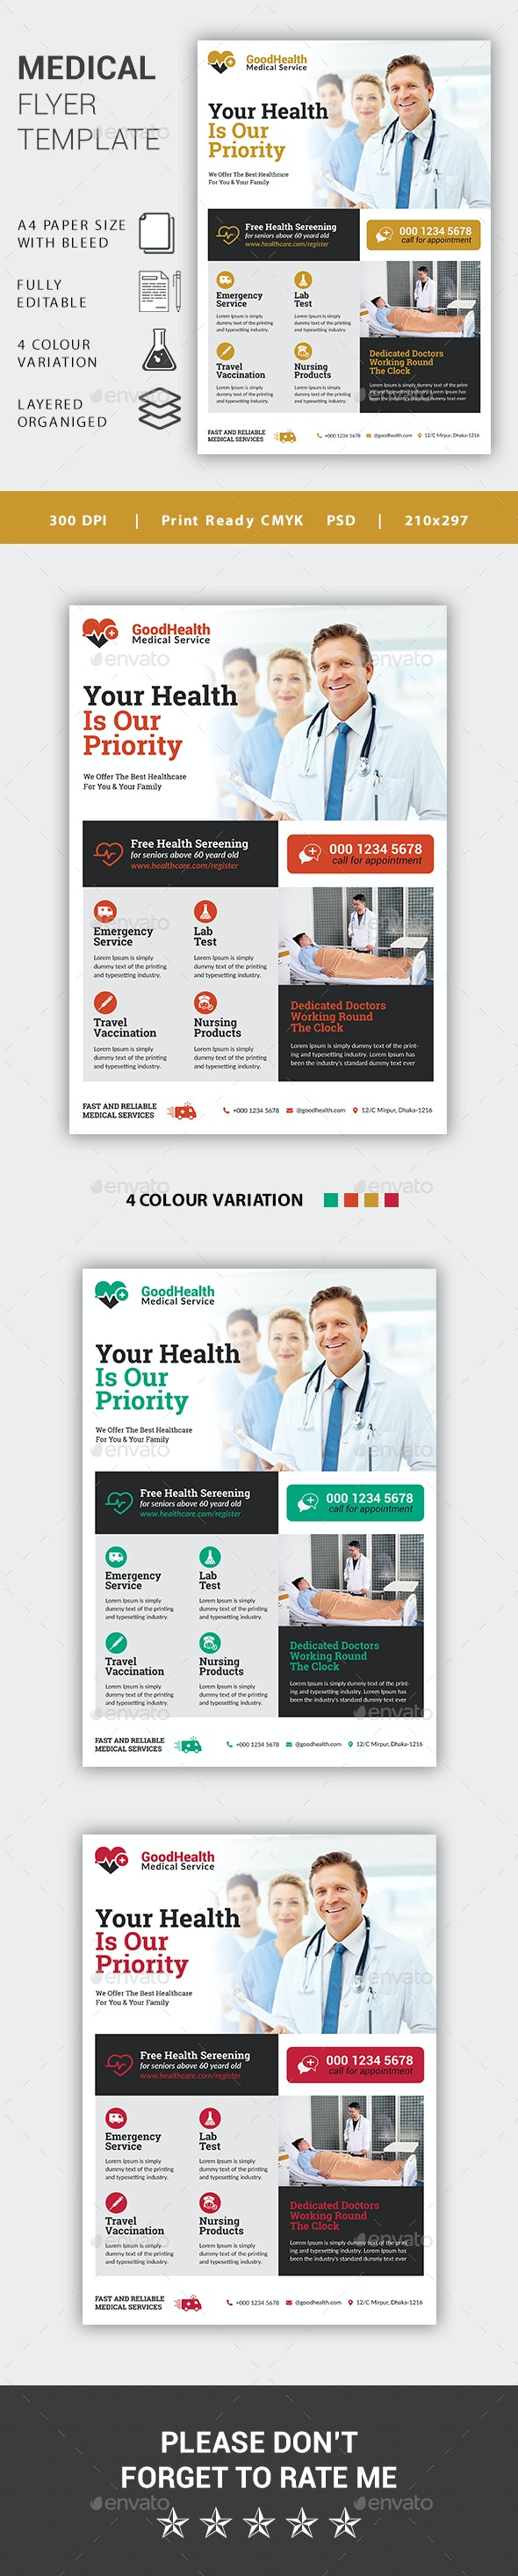 Medical Flyer Template - Corporate Business Cards